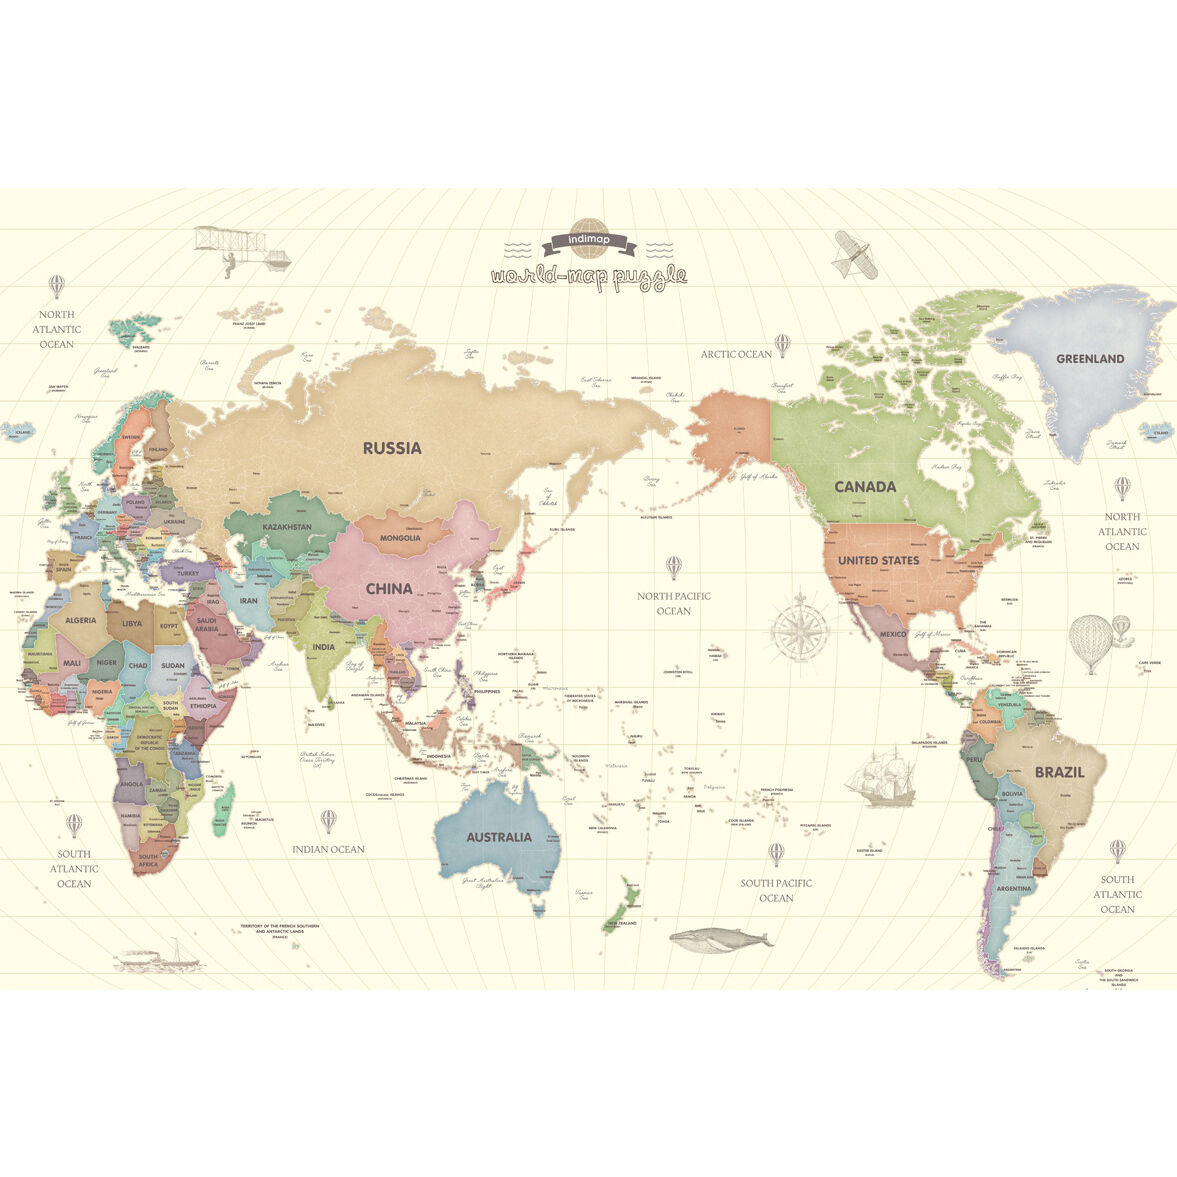 World map pastel color 1000 piece jigsaw puzzle indigopuzzle ebay picture 1 of 4 gumiabroncs Images